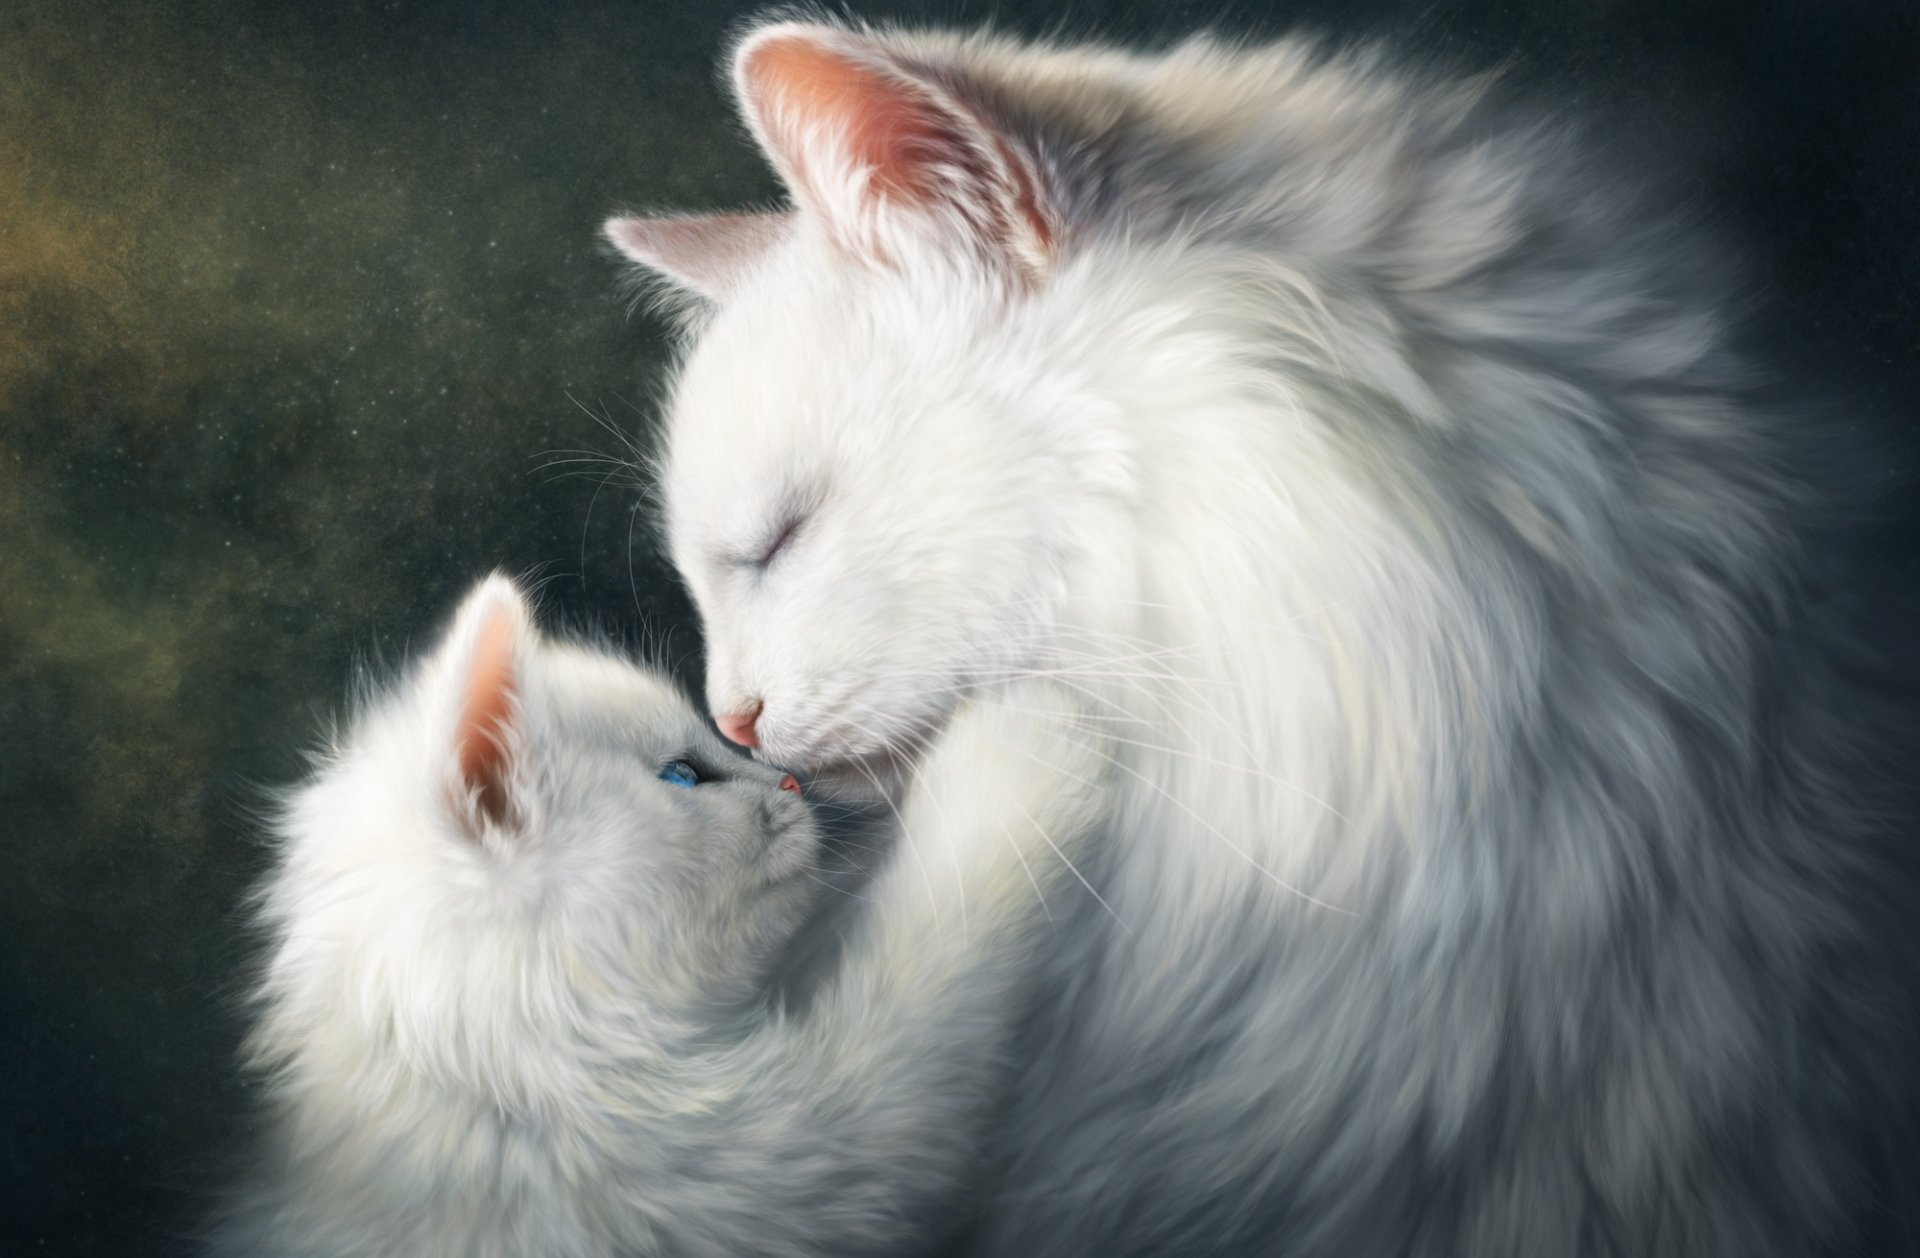 Cute Baby Wallpaper Full Hd Painting Of Mother Cat And Kitten Hd Wallpaper